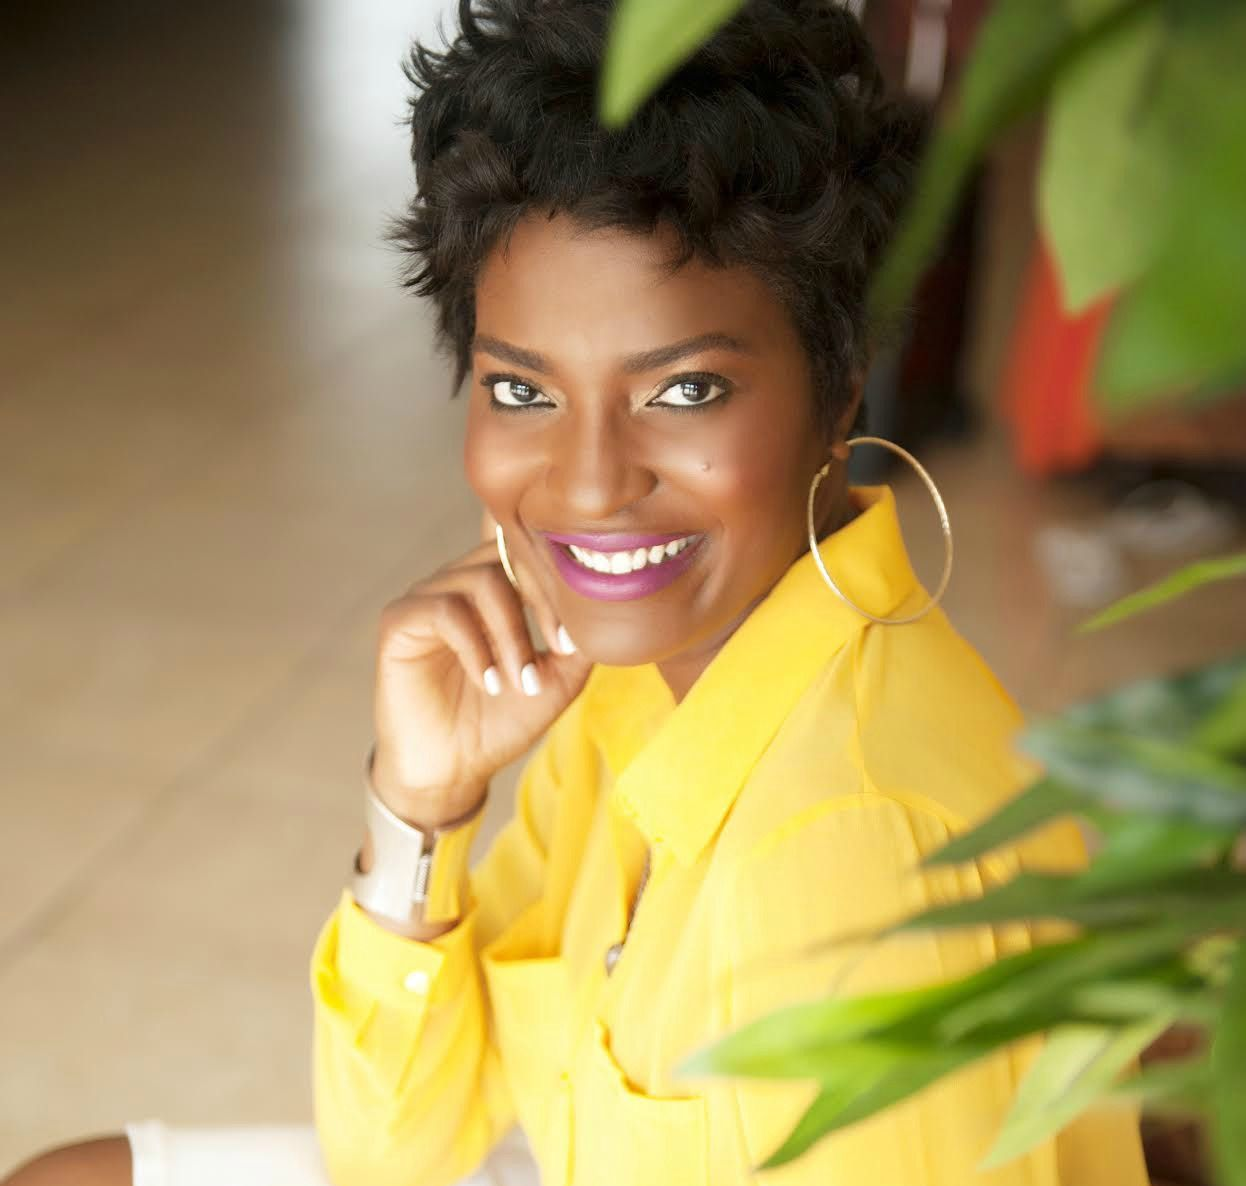 #TropicsVoices Ambassador Yetunde Shorters | http://bit.ly/1OynDqi via @TropicsMagazine :  « I have successfully launched over 100 personal brands and businesses over the years. Today, I train new entrepreneurs on how to create a purposeful and profitable brand using my teaching platform, ICY ACADEMY, www.icyacademy.com. »  #TropicsMagazine #Nigeria #Miami #Publicist #Entrepreneur #AfropolitanChef